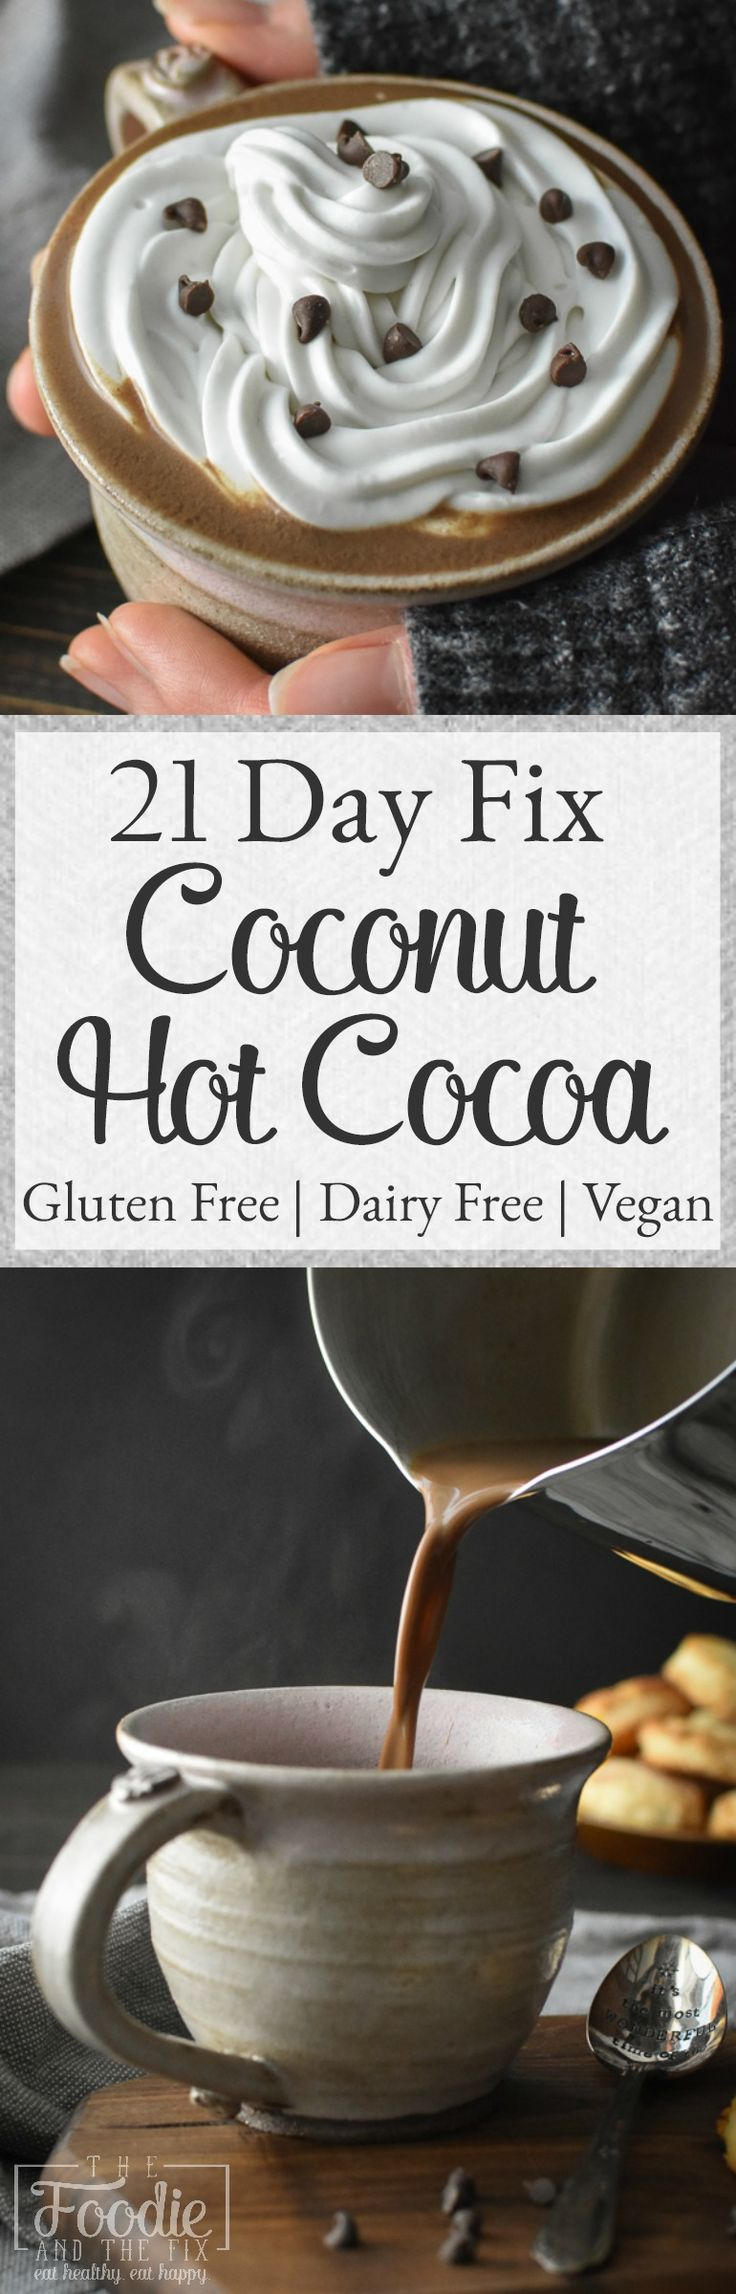 Coconut Hot Cocoa {21 Day Fix | Dairy Free | Gluten Free | Vegan} | The Foodie and The Fix